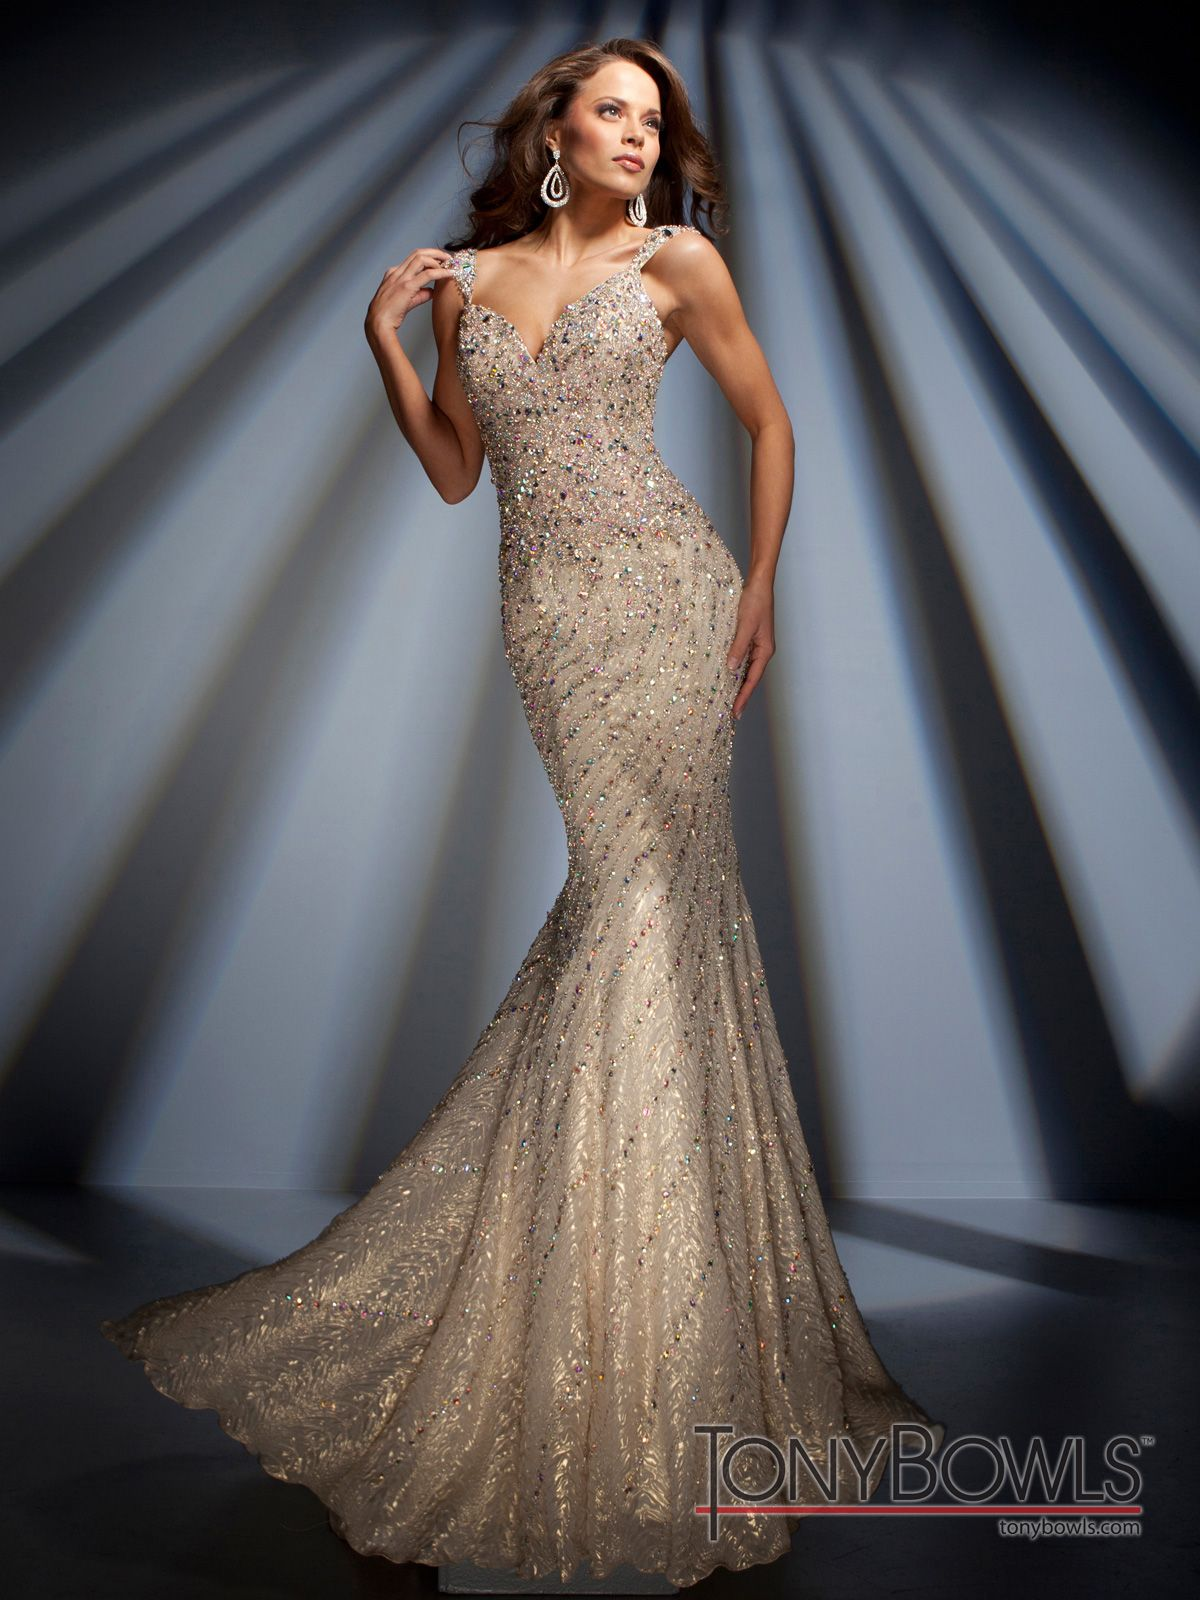 627f1bf645  Tony Bowls Style  TBC020 Perfect for Red Carpet!! Pageant dress  IPAProm   TonyBowls  dresses  pageantdresses